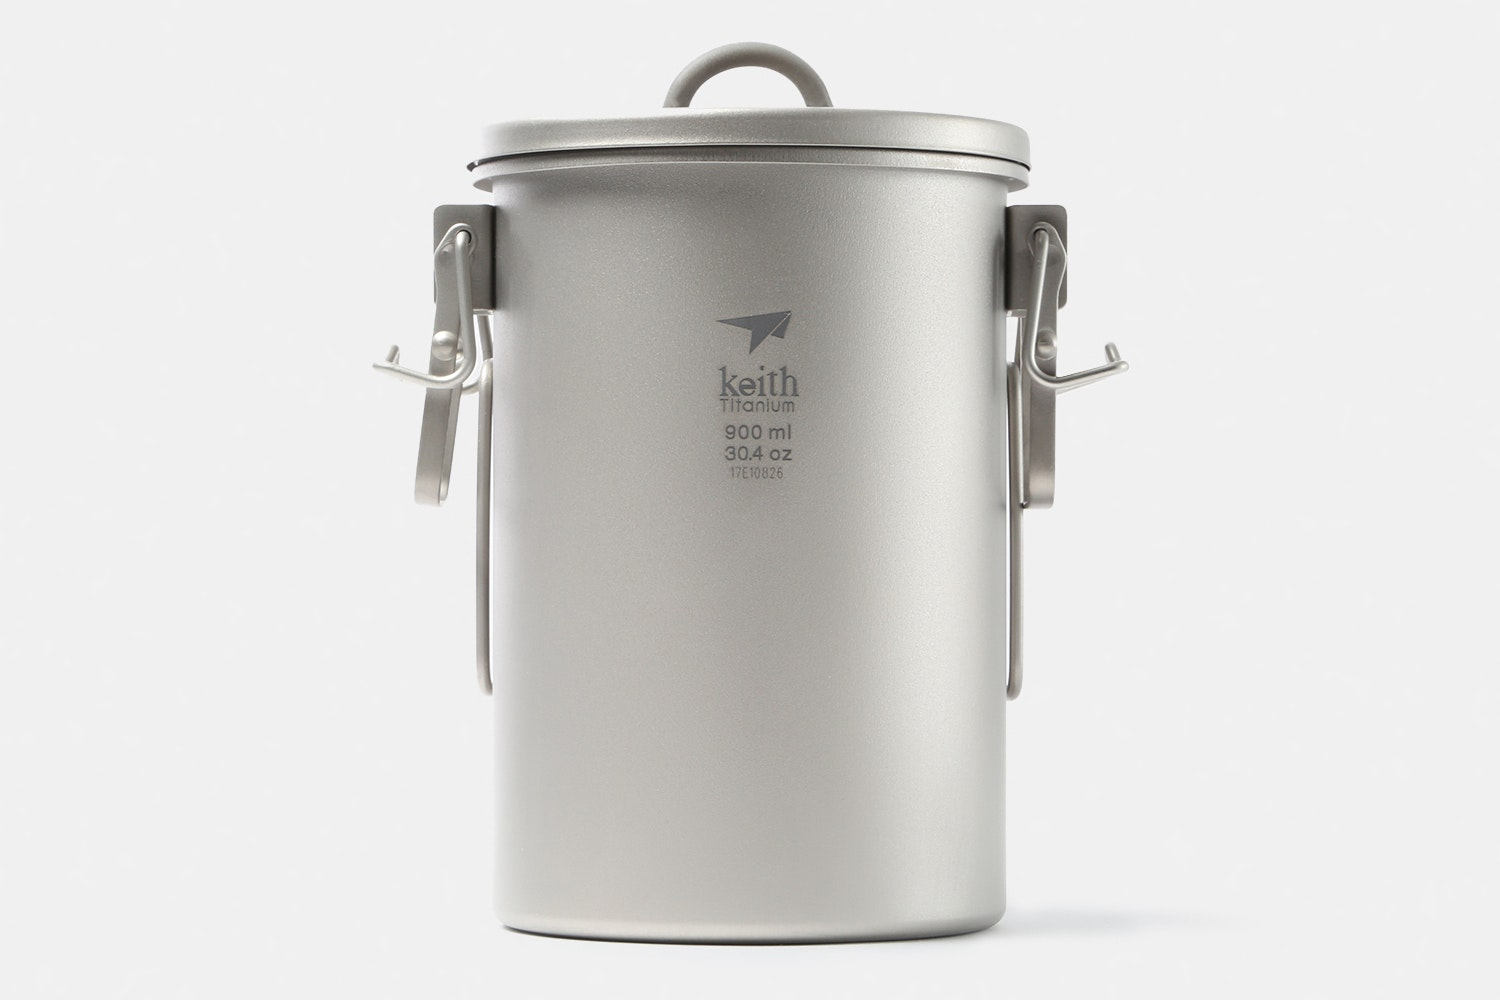 Keith Titanium Ti6300 Multifunctional Cooker